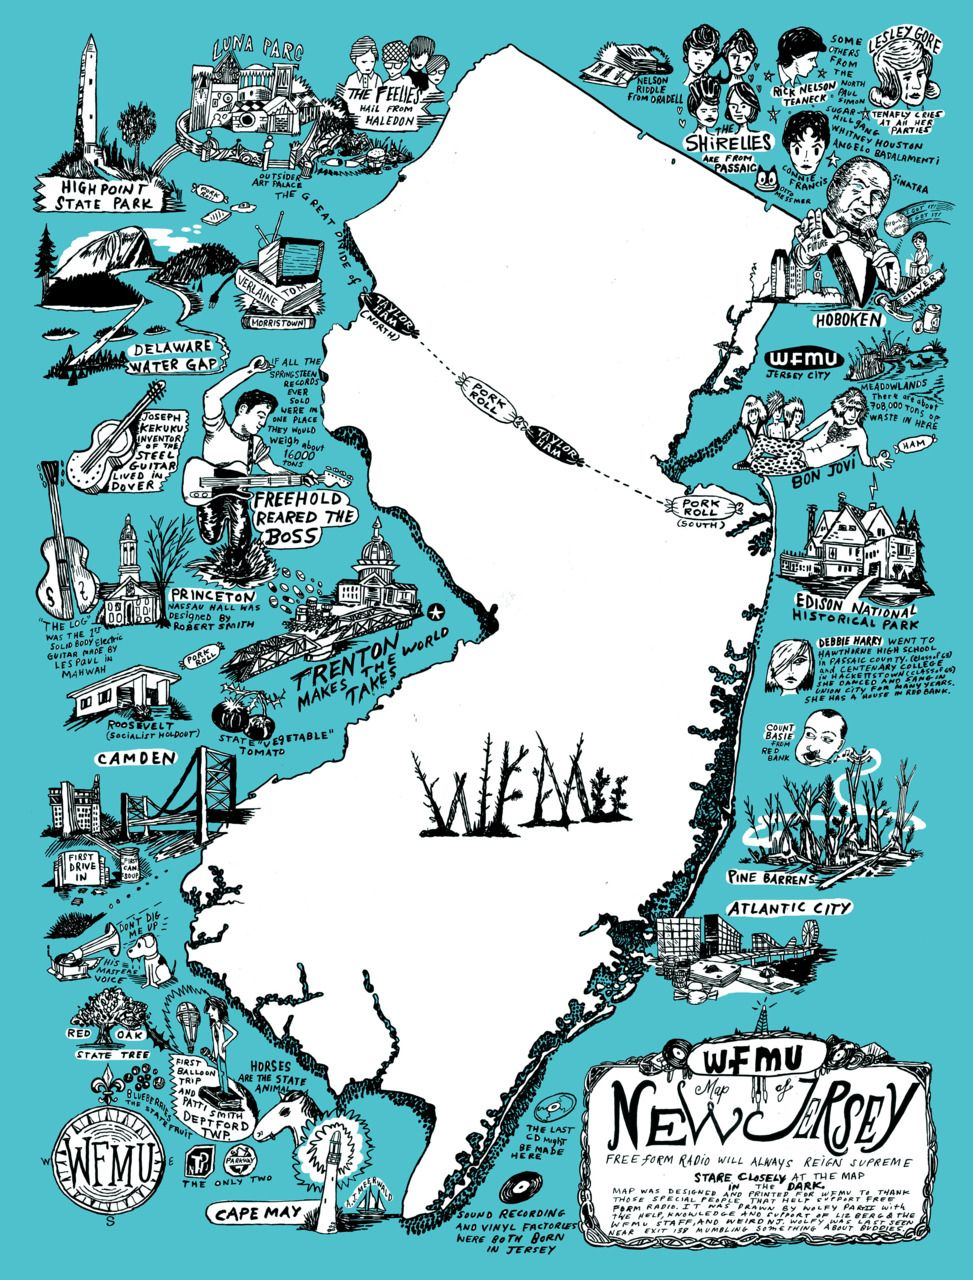 New Jersey My Home For About 10 Years Of My Life And I Went To Elementary School Here